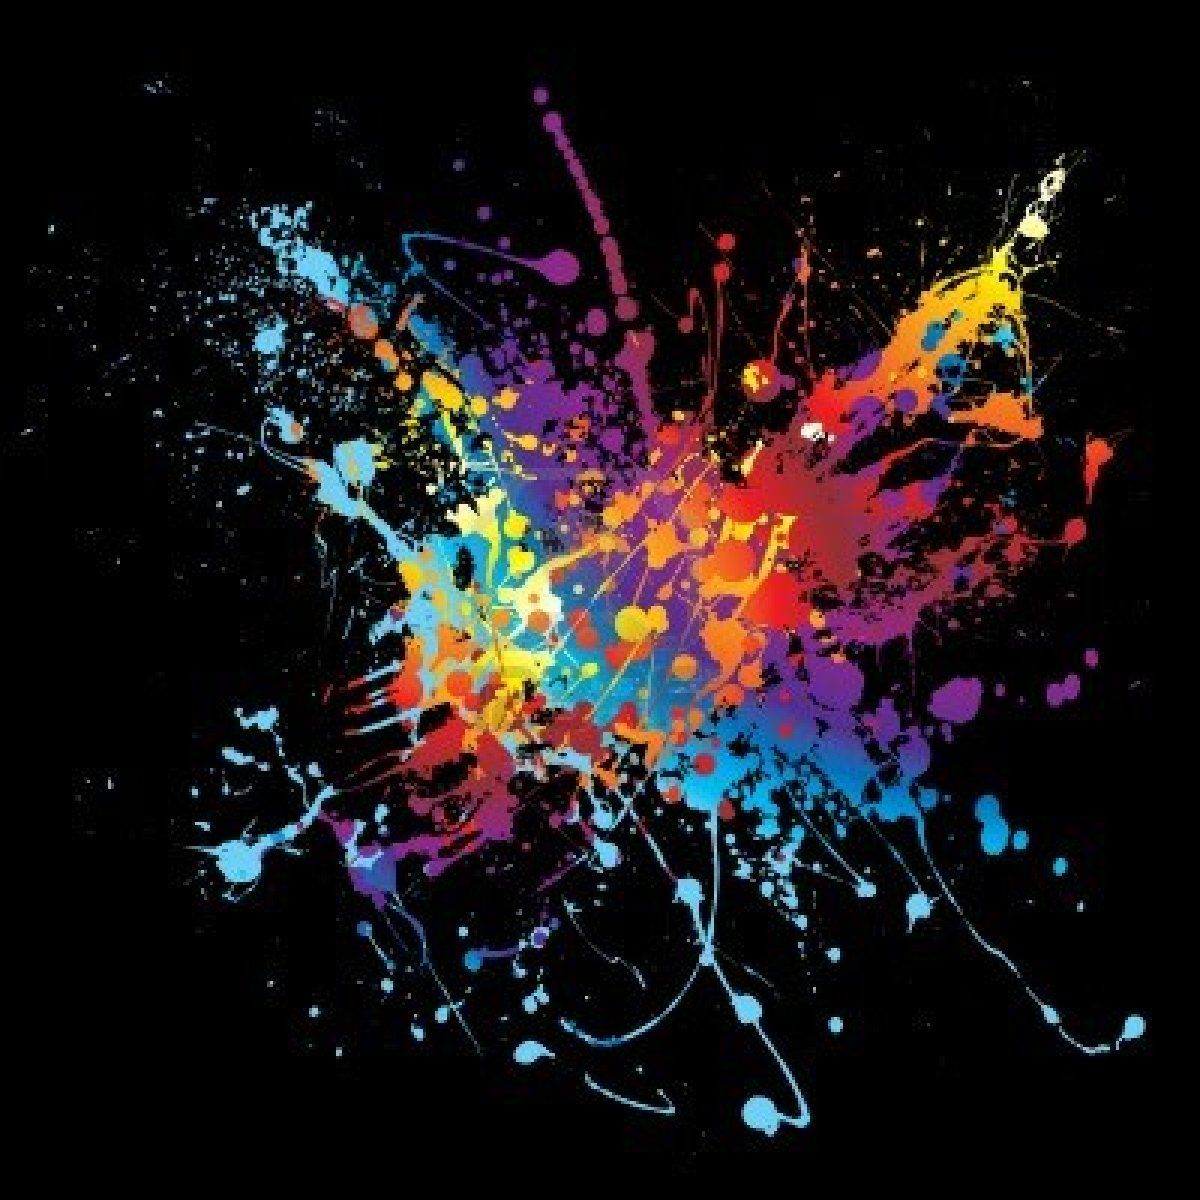 Colourful Splat Design With Black Background Travel Art Canvas Paintings Splatter